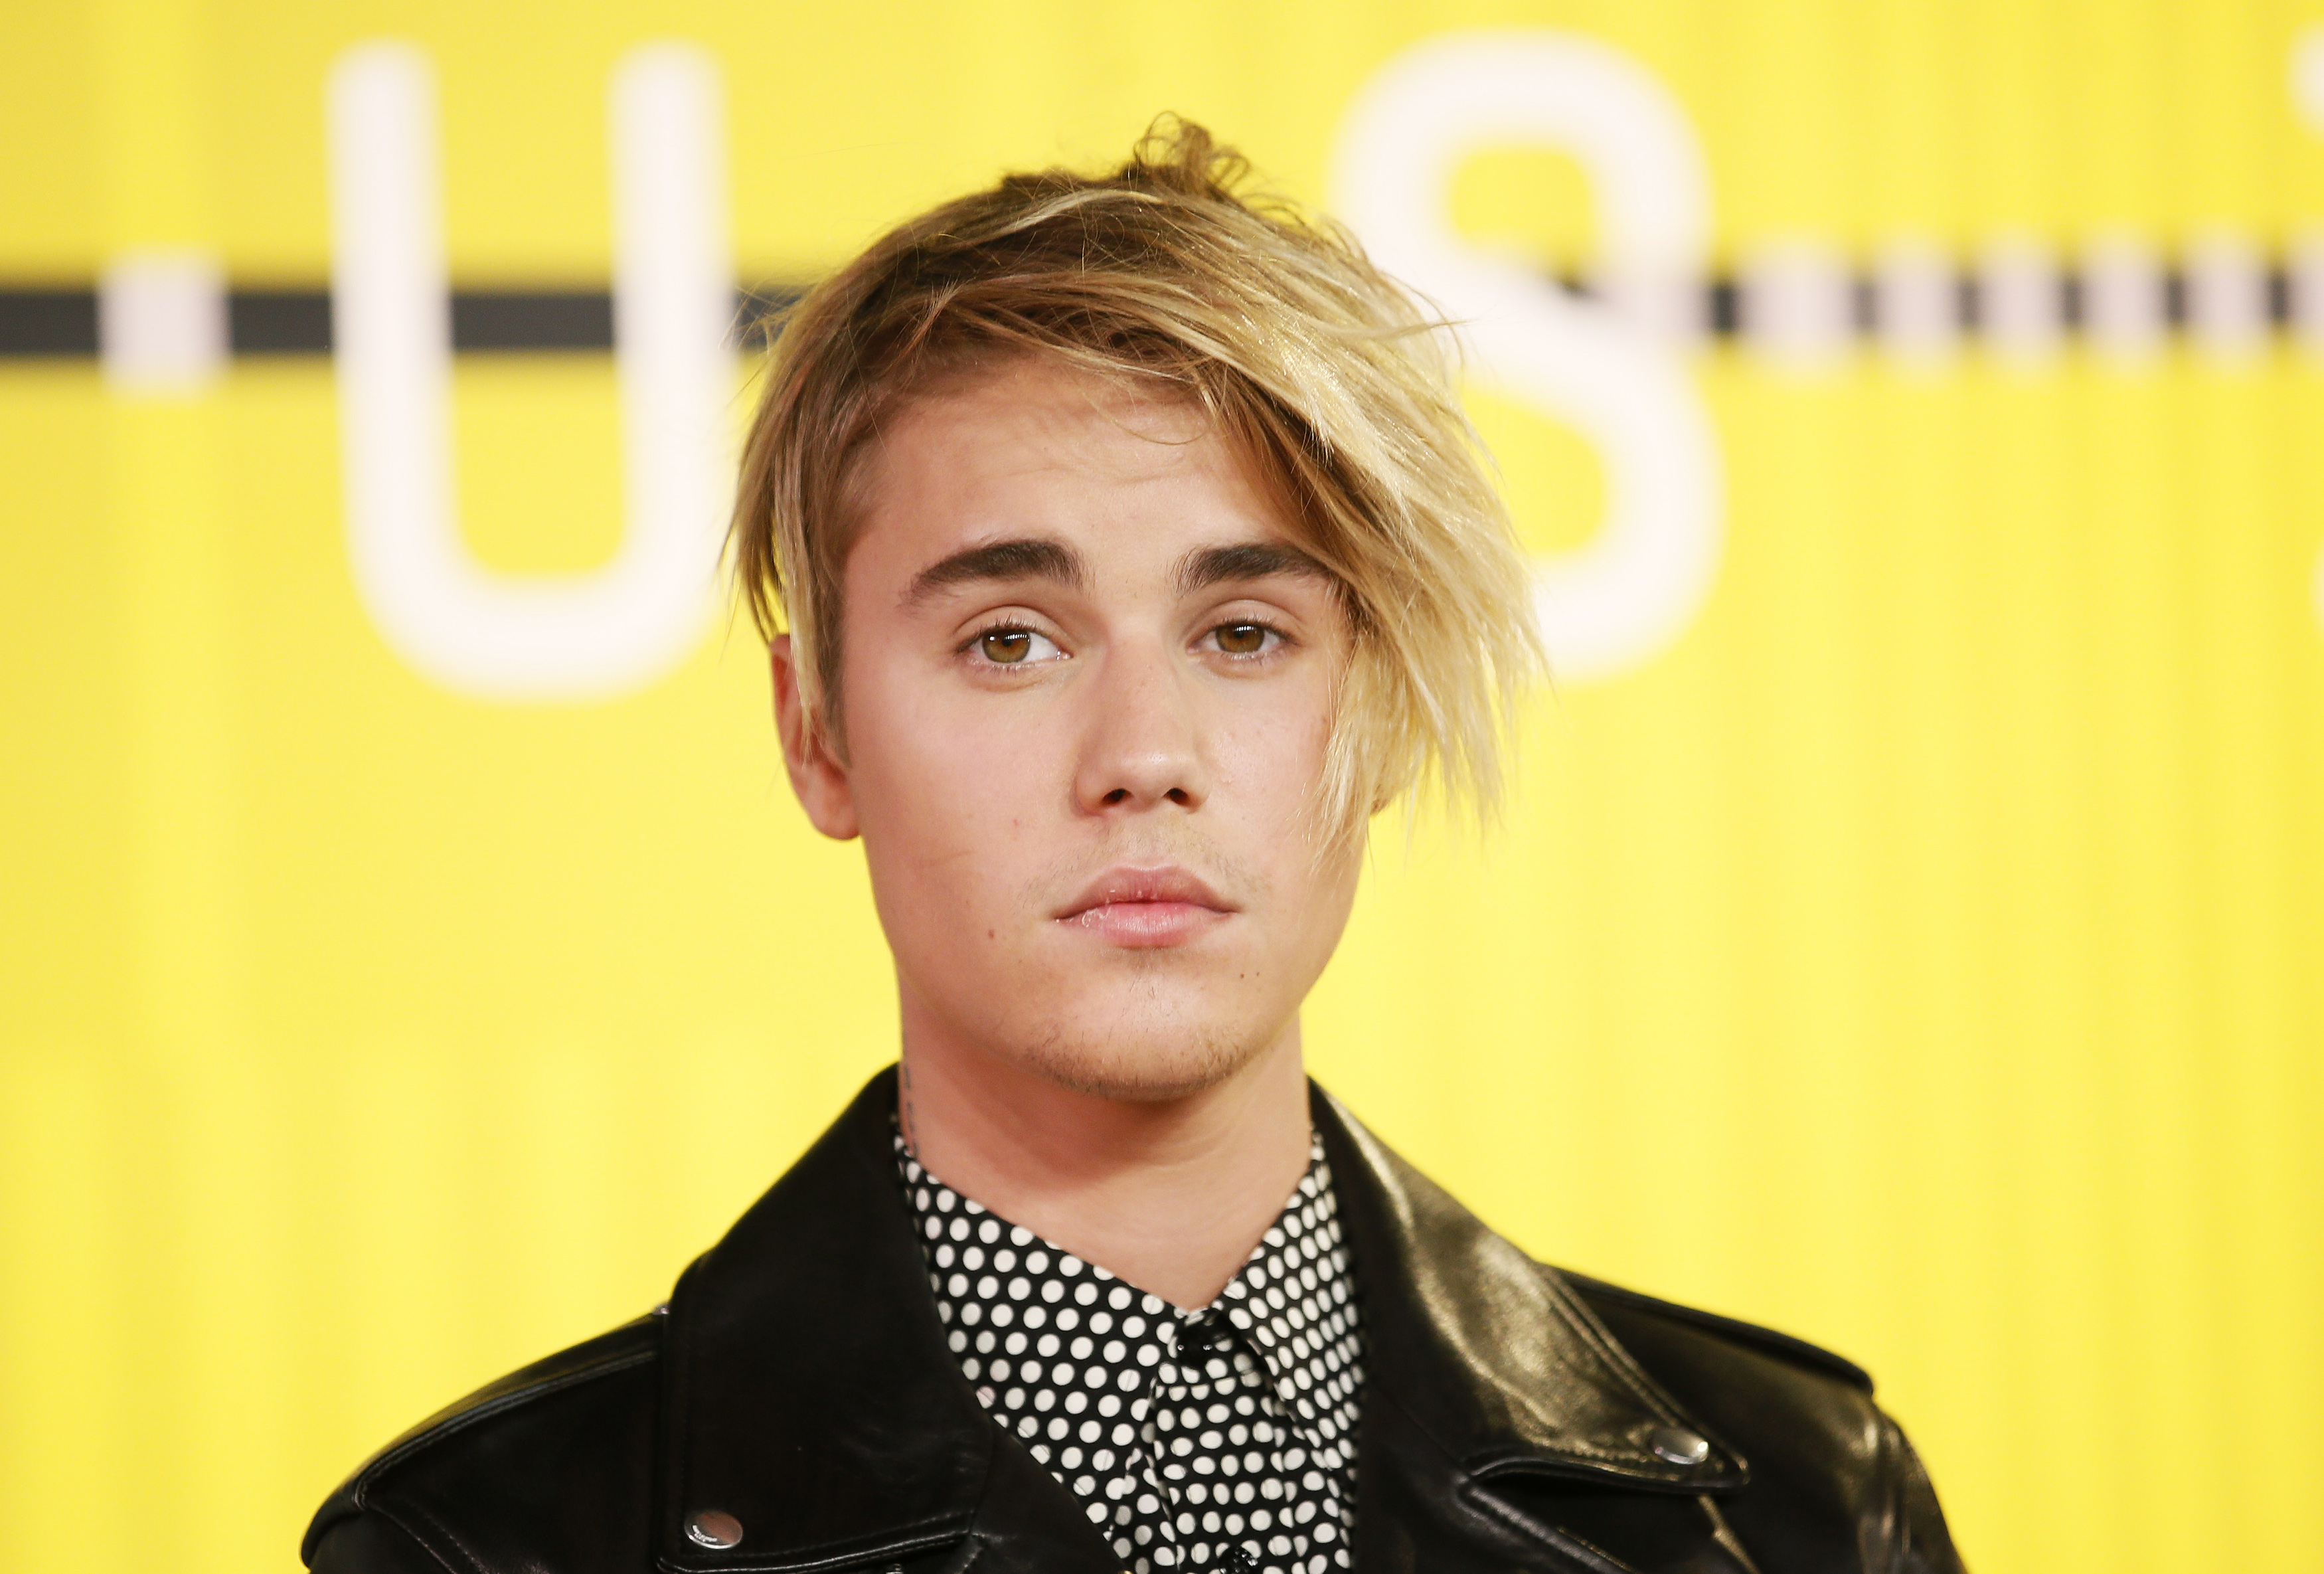 Justin Bieber in Dotted Shirt 5051.94 Kb